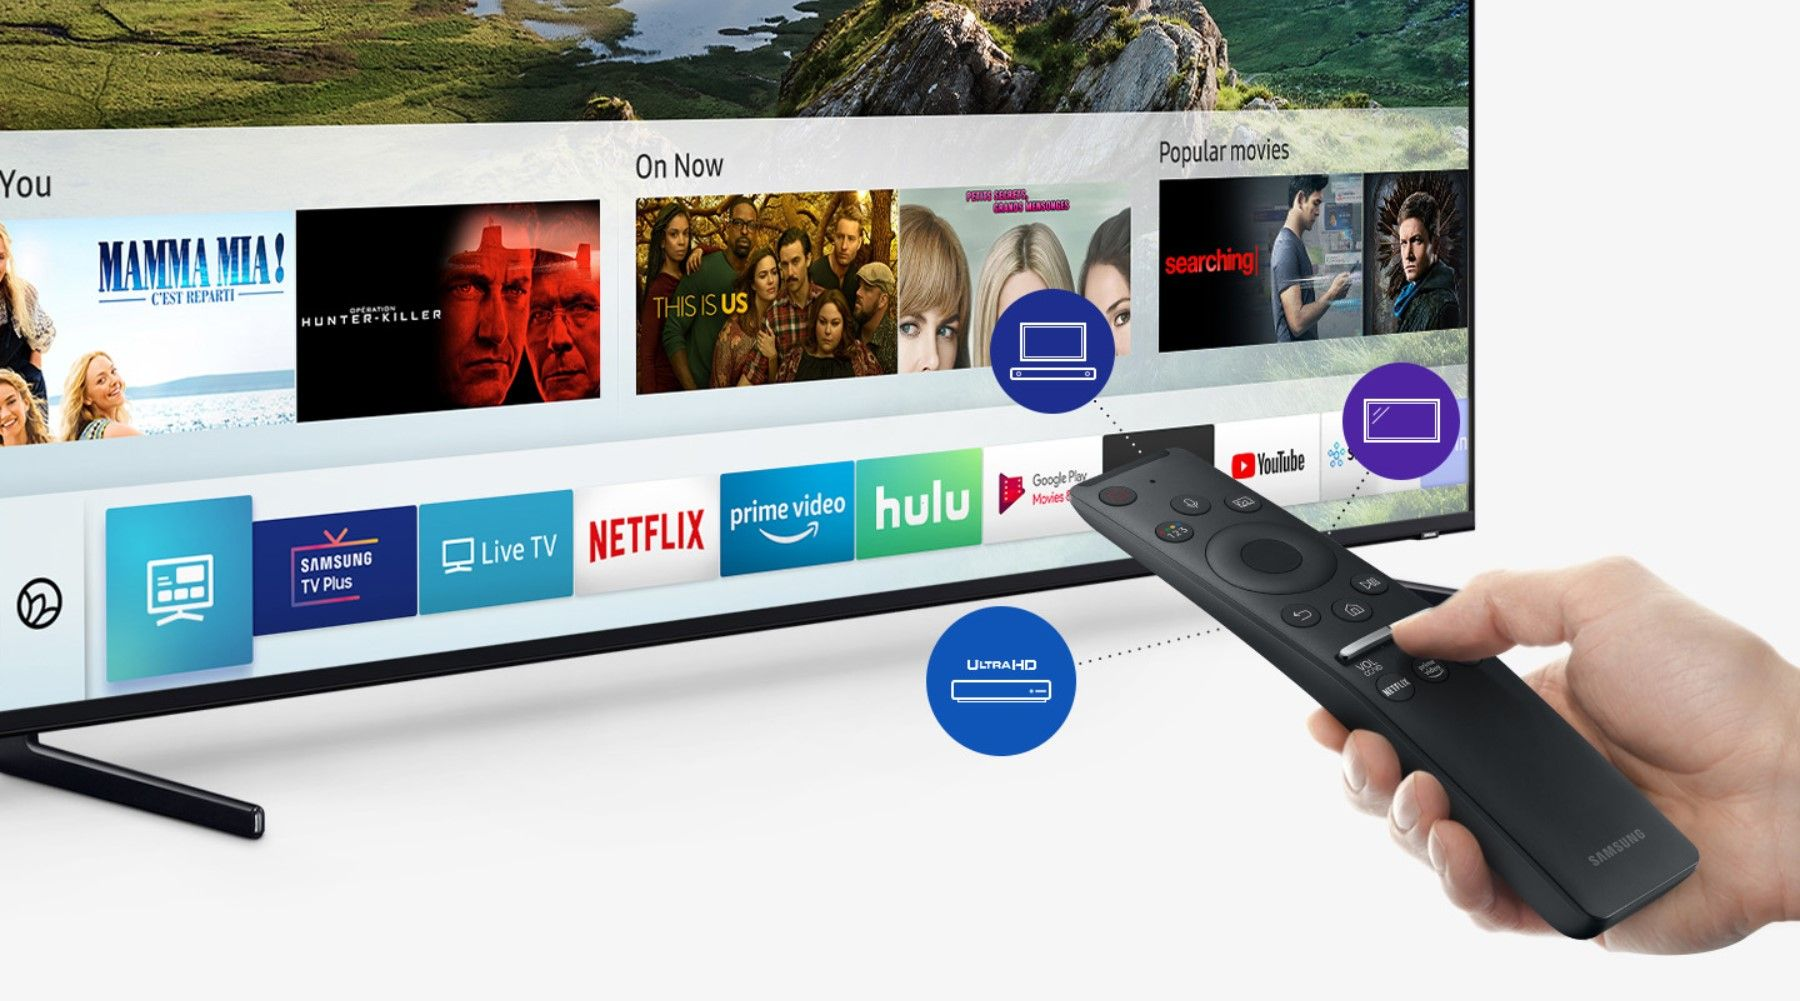 Samsung Makes Its Tizen Tv Os Available For Other Tv Manufacturers New Developer Tools Announced Mysmartprice